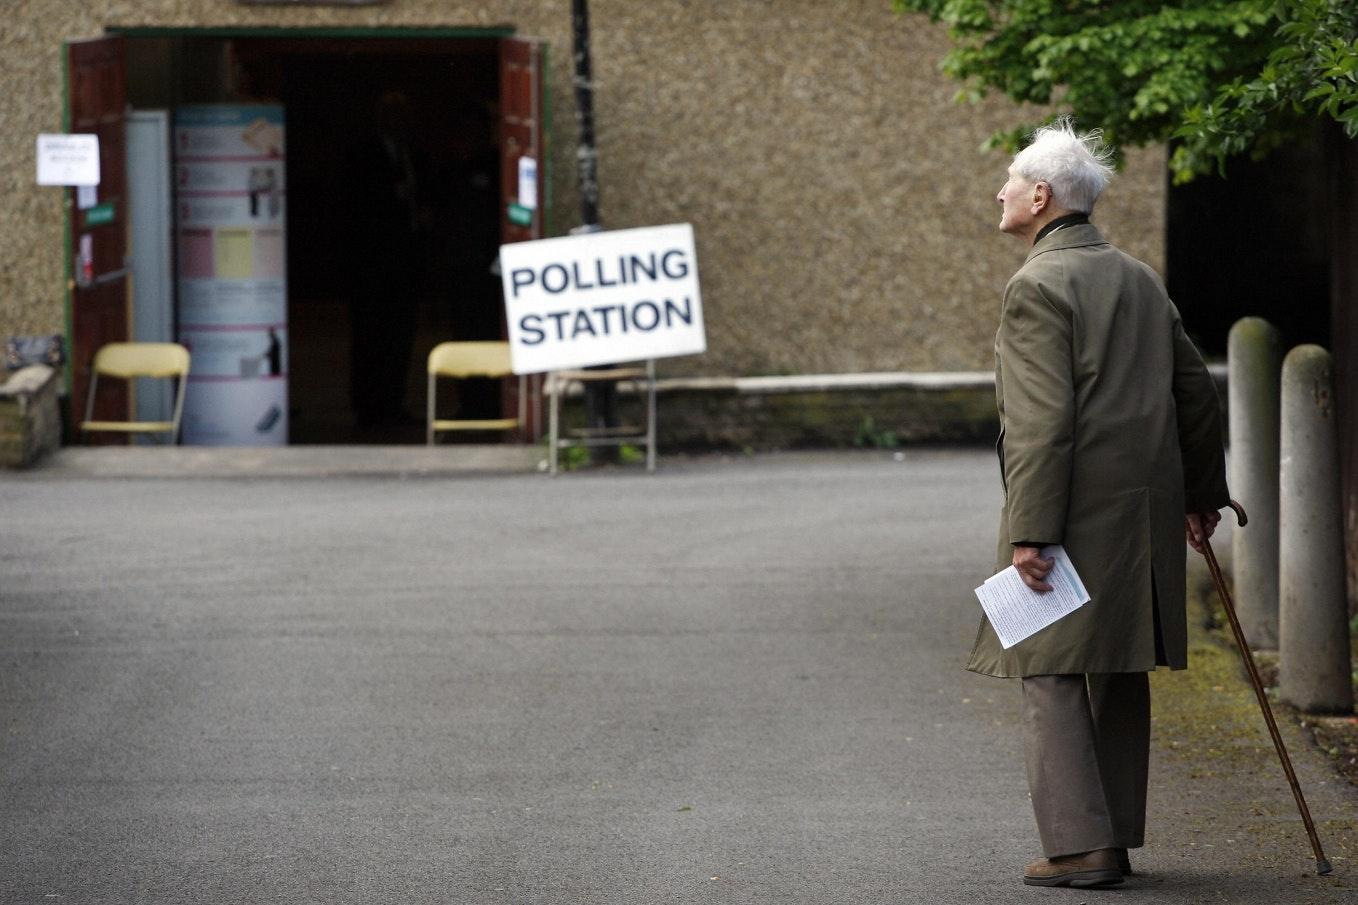 An elderly man walking with a cane towards a polling station